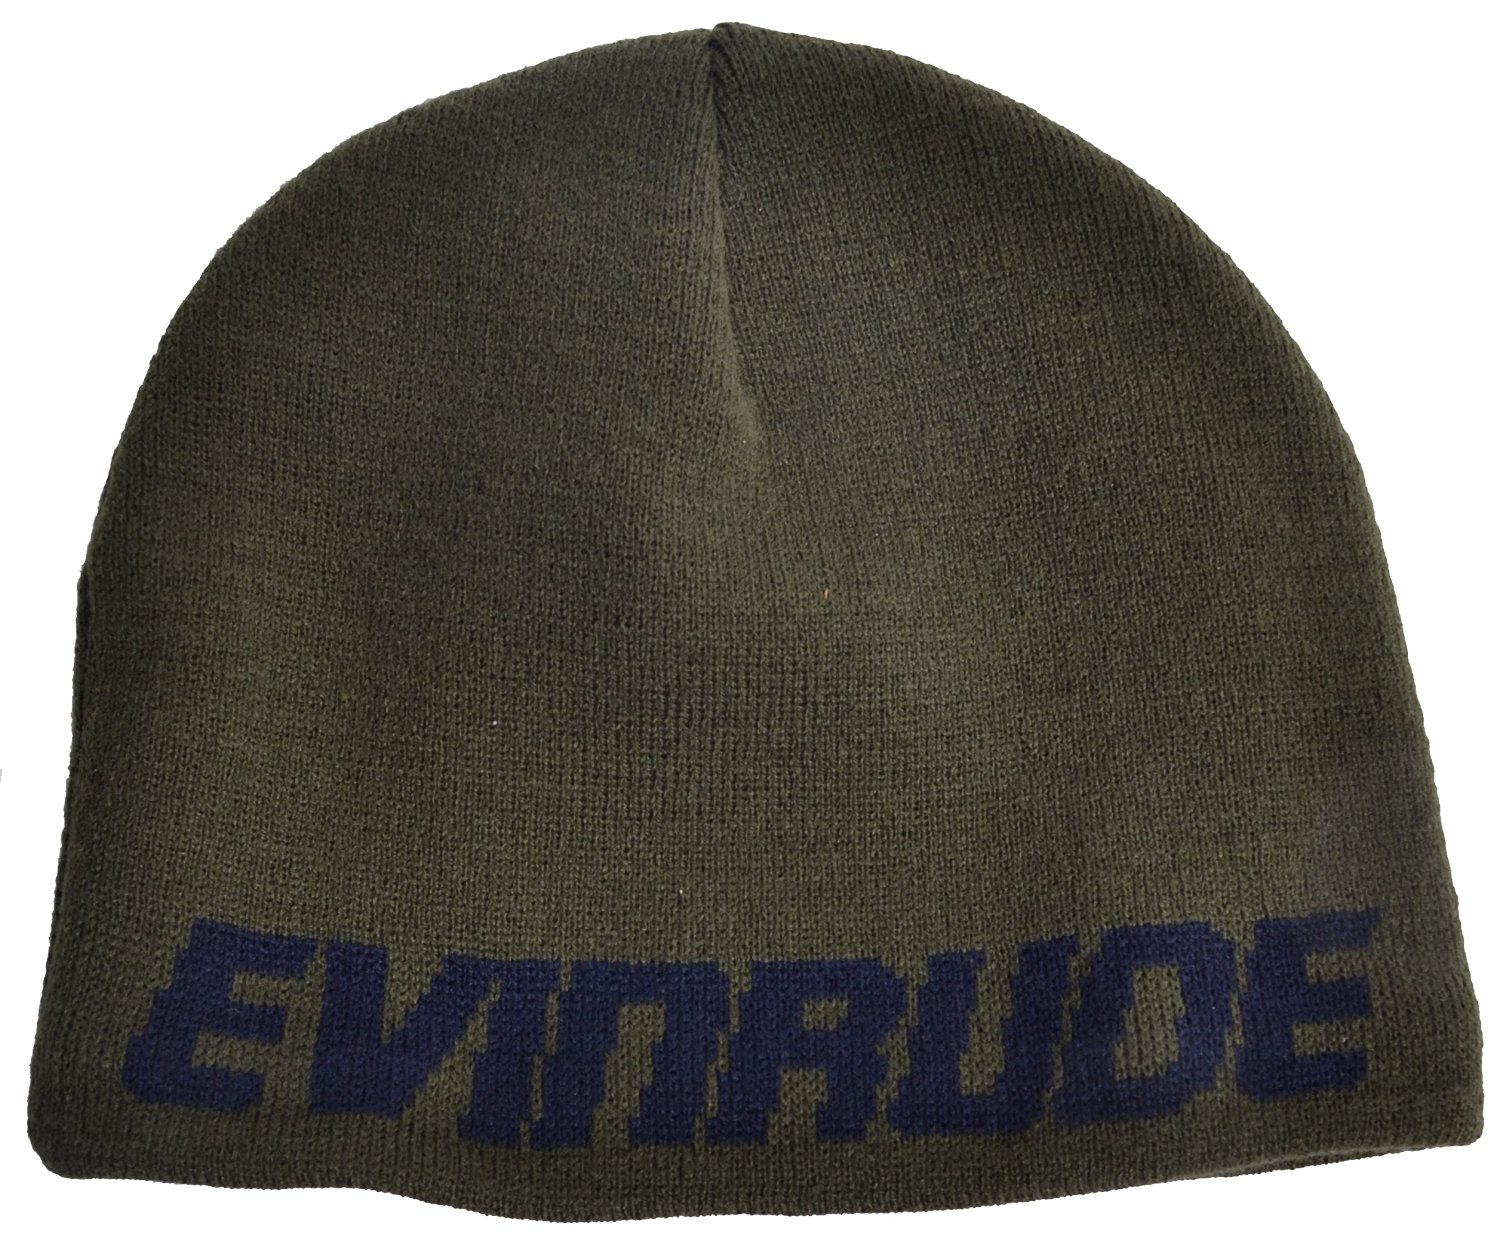 0ab7fbd409e40 Buy BRP Evinrude Outboard Motors Navy Distressed Mesh Hat Cap in ...